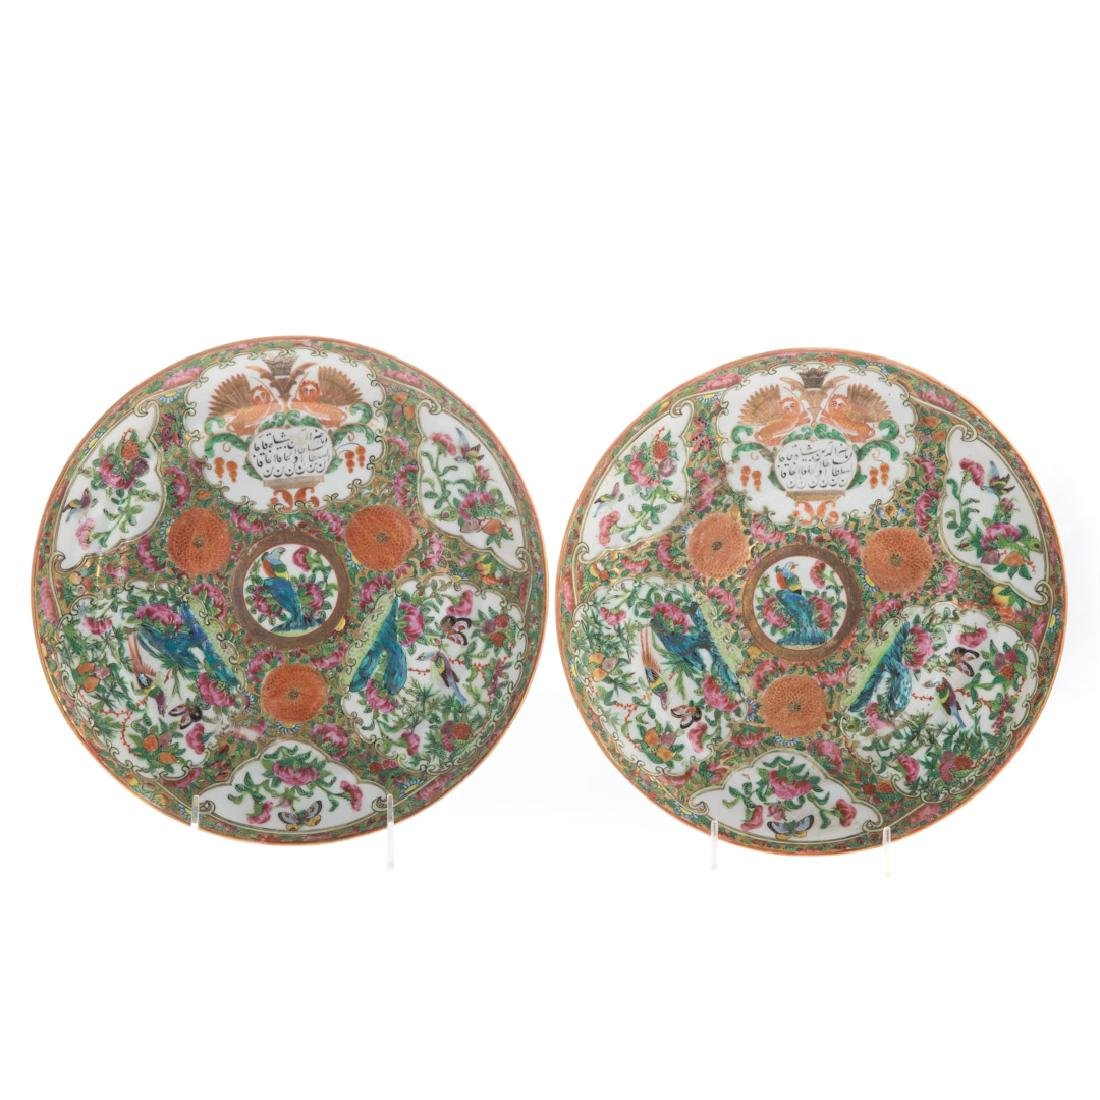 Pair rare Chinese Export armorial plates